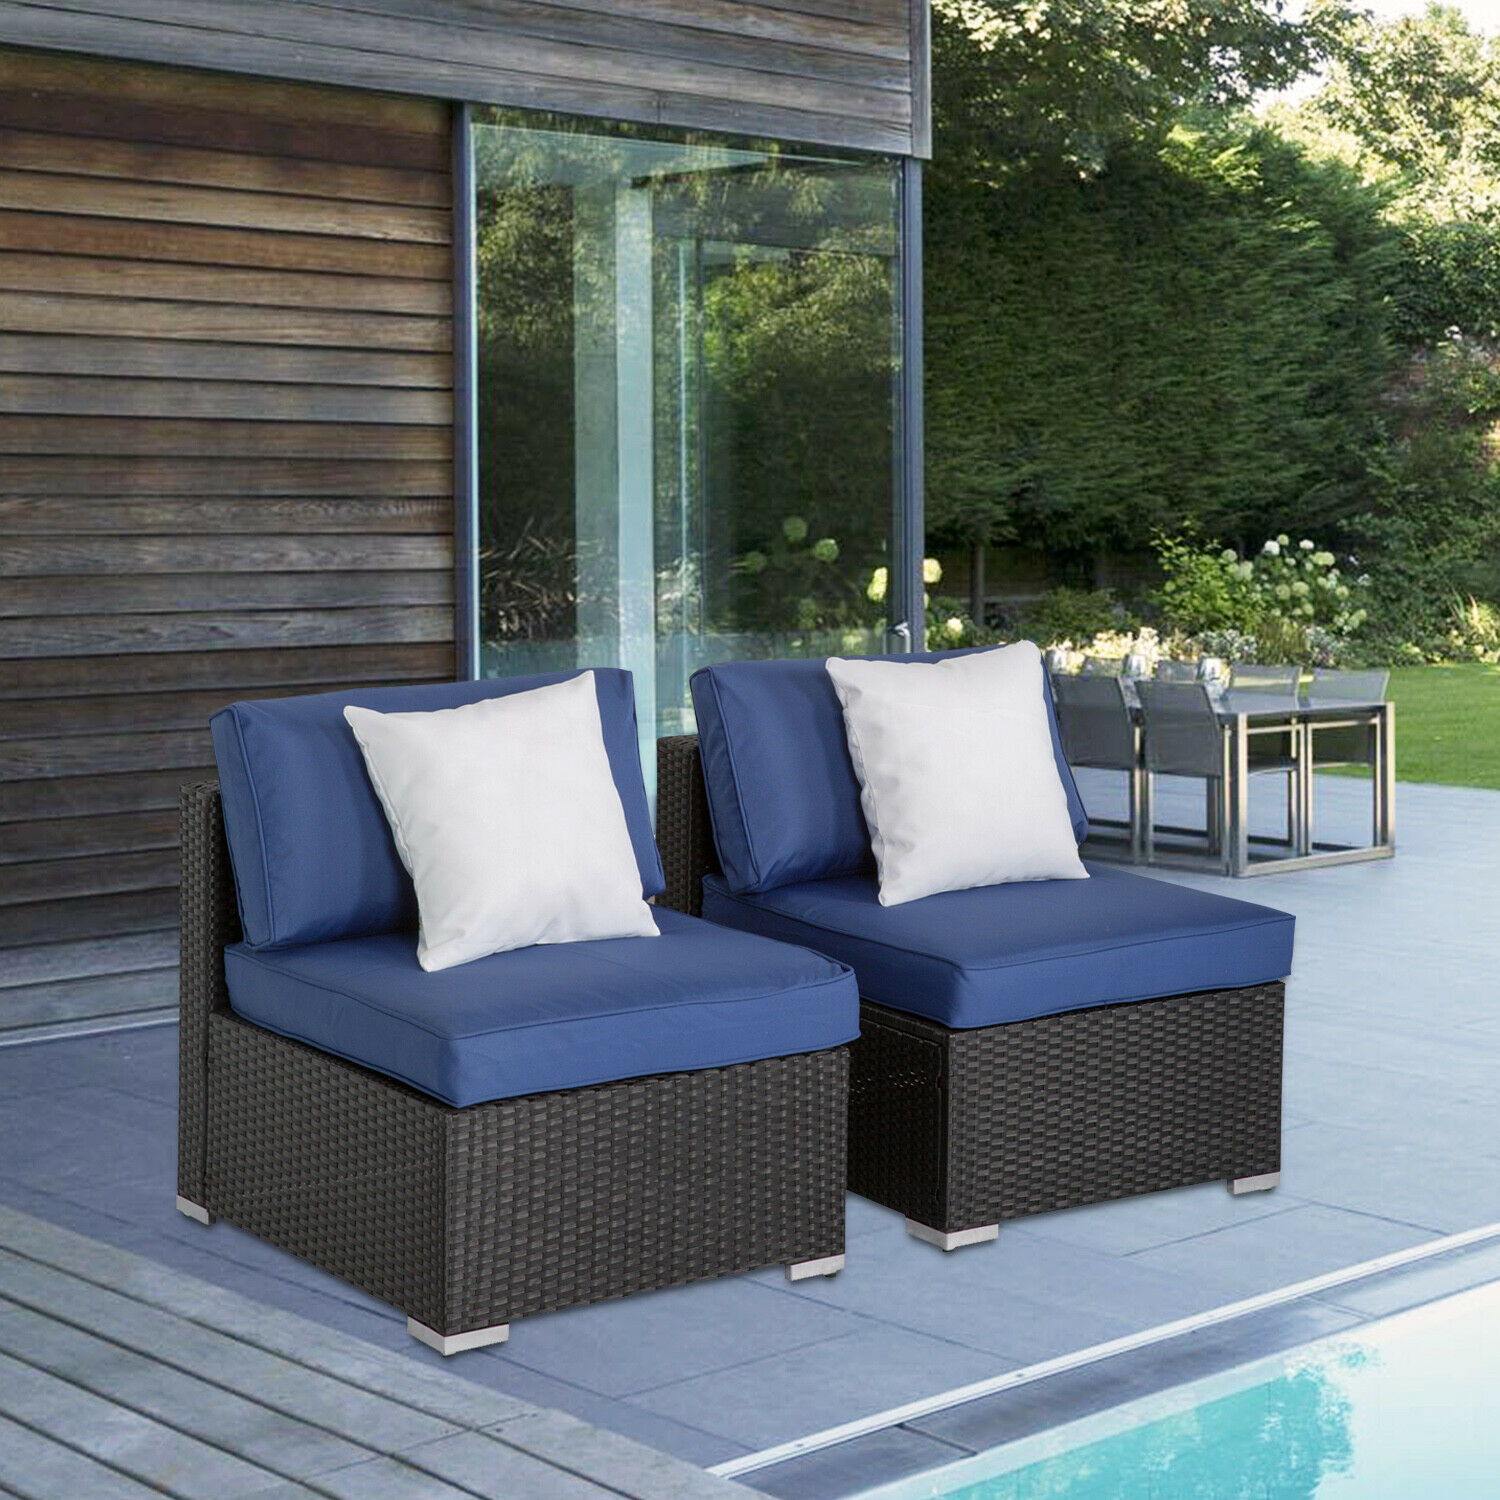 Garden Furniture - 2PC Garden PE Rattan Middle Sofa Dark Blue Cushion Couch Outdoor Patio Furniture